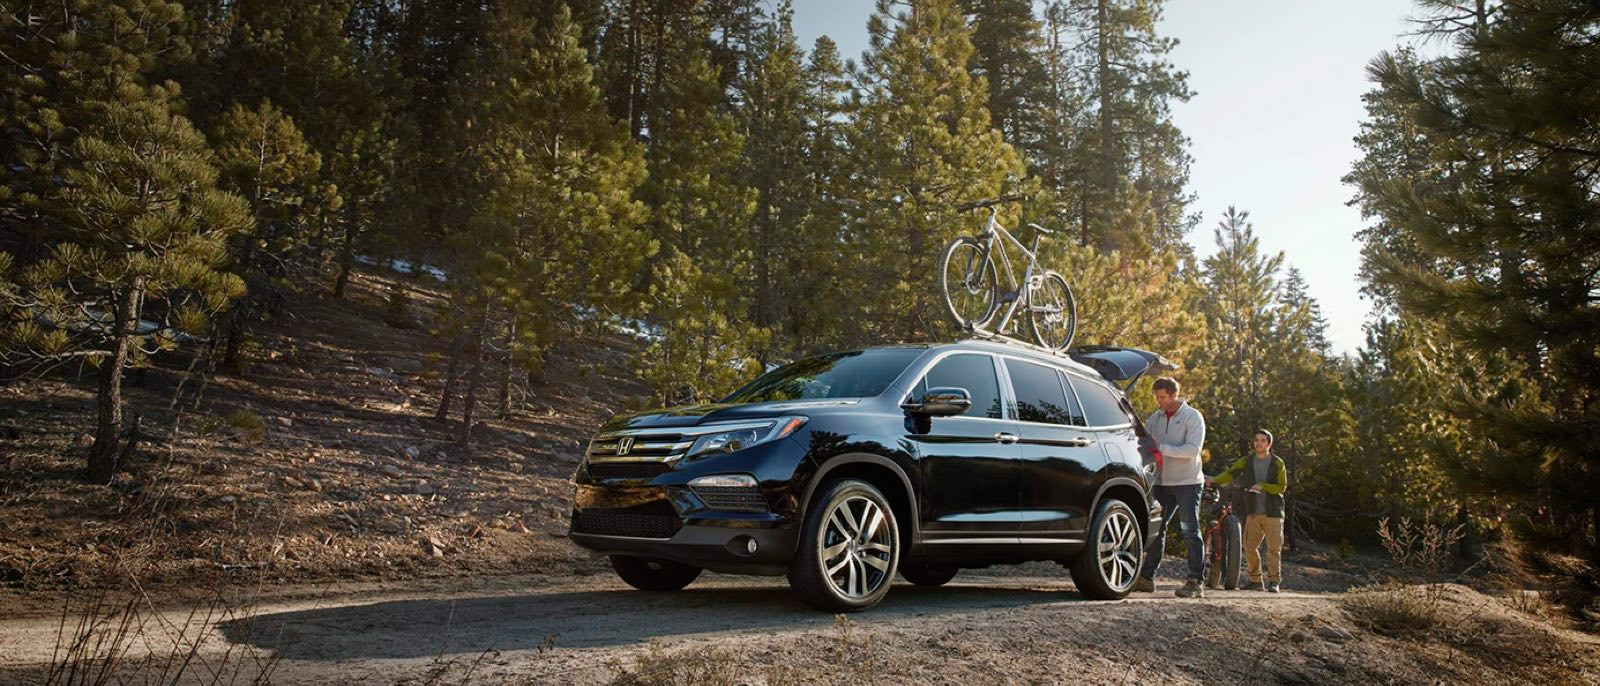 2016 Honda Pilot By Trees